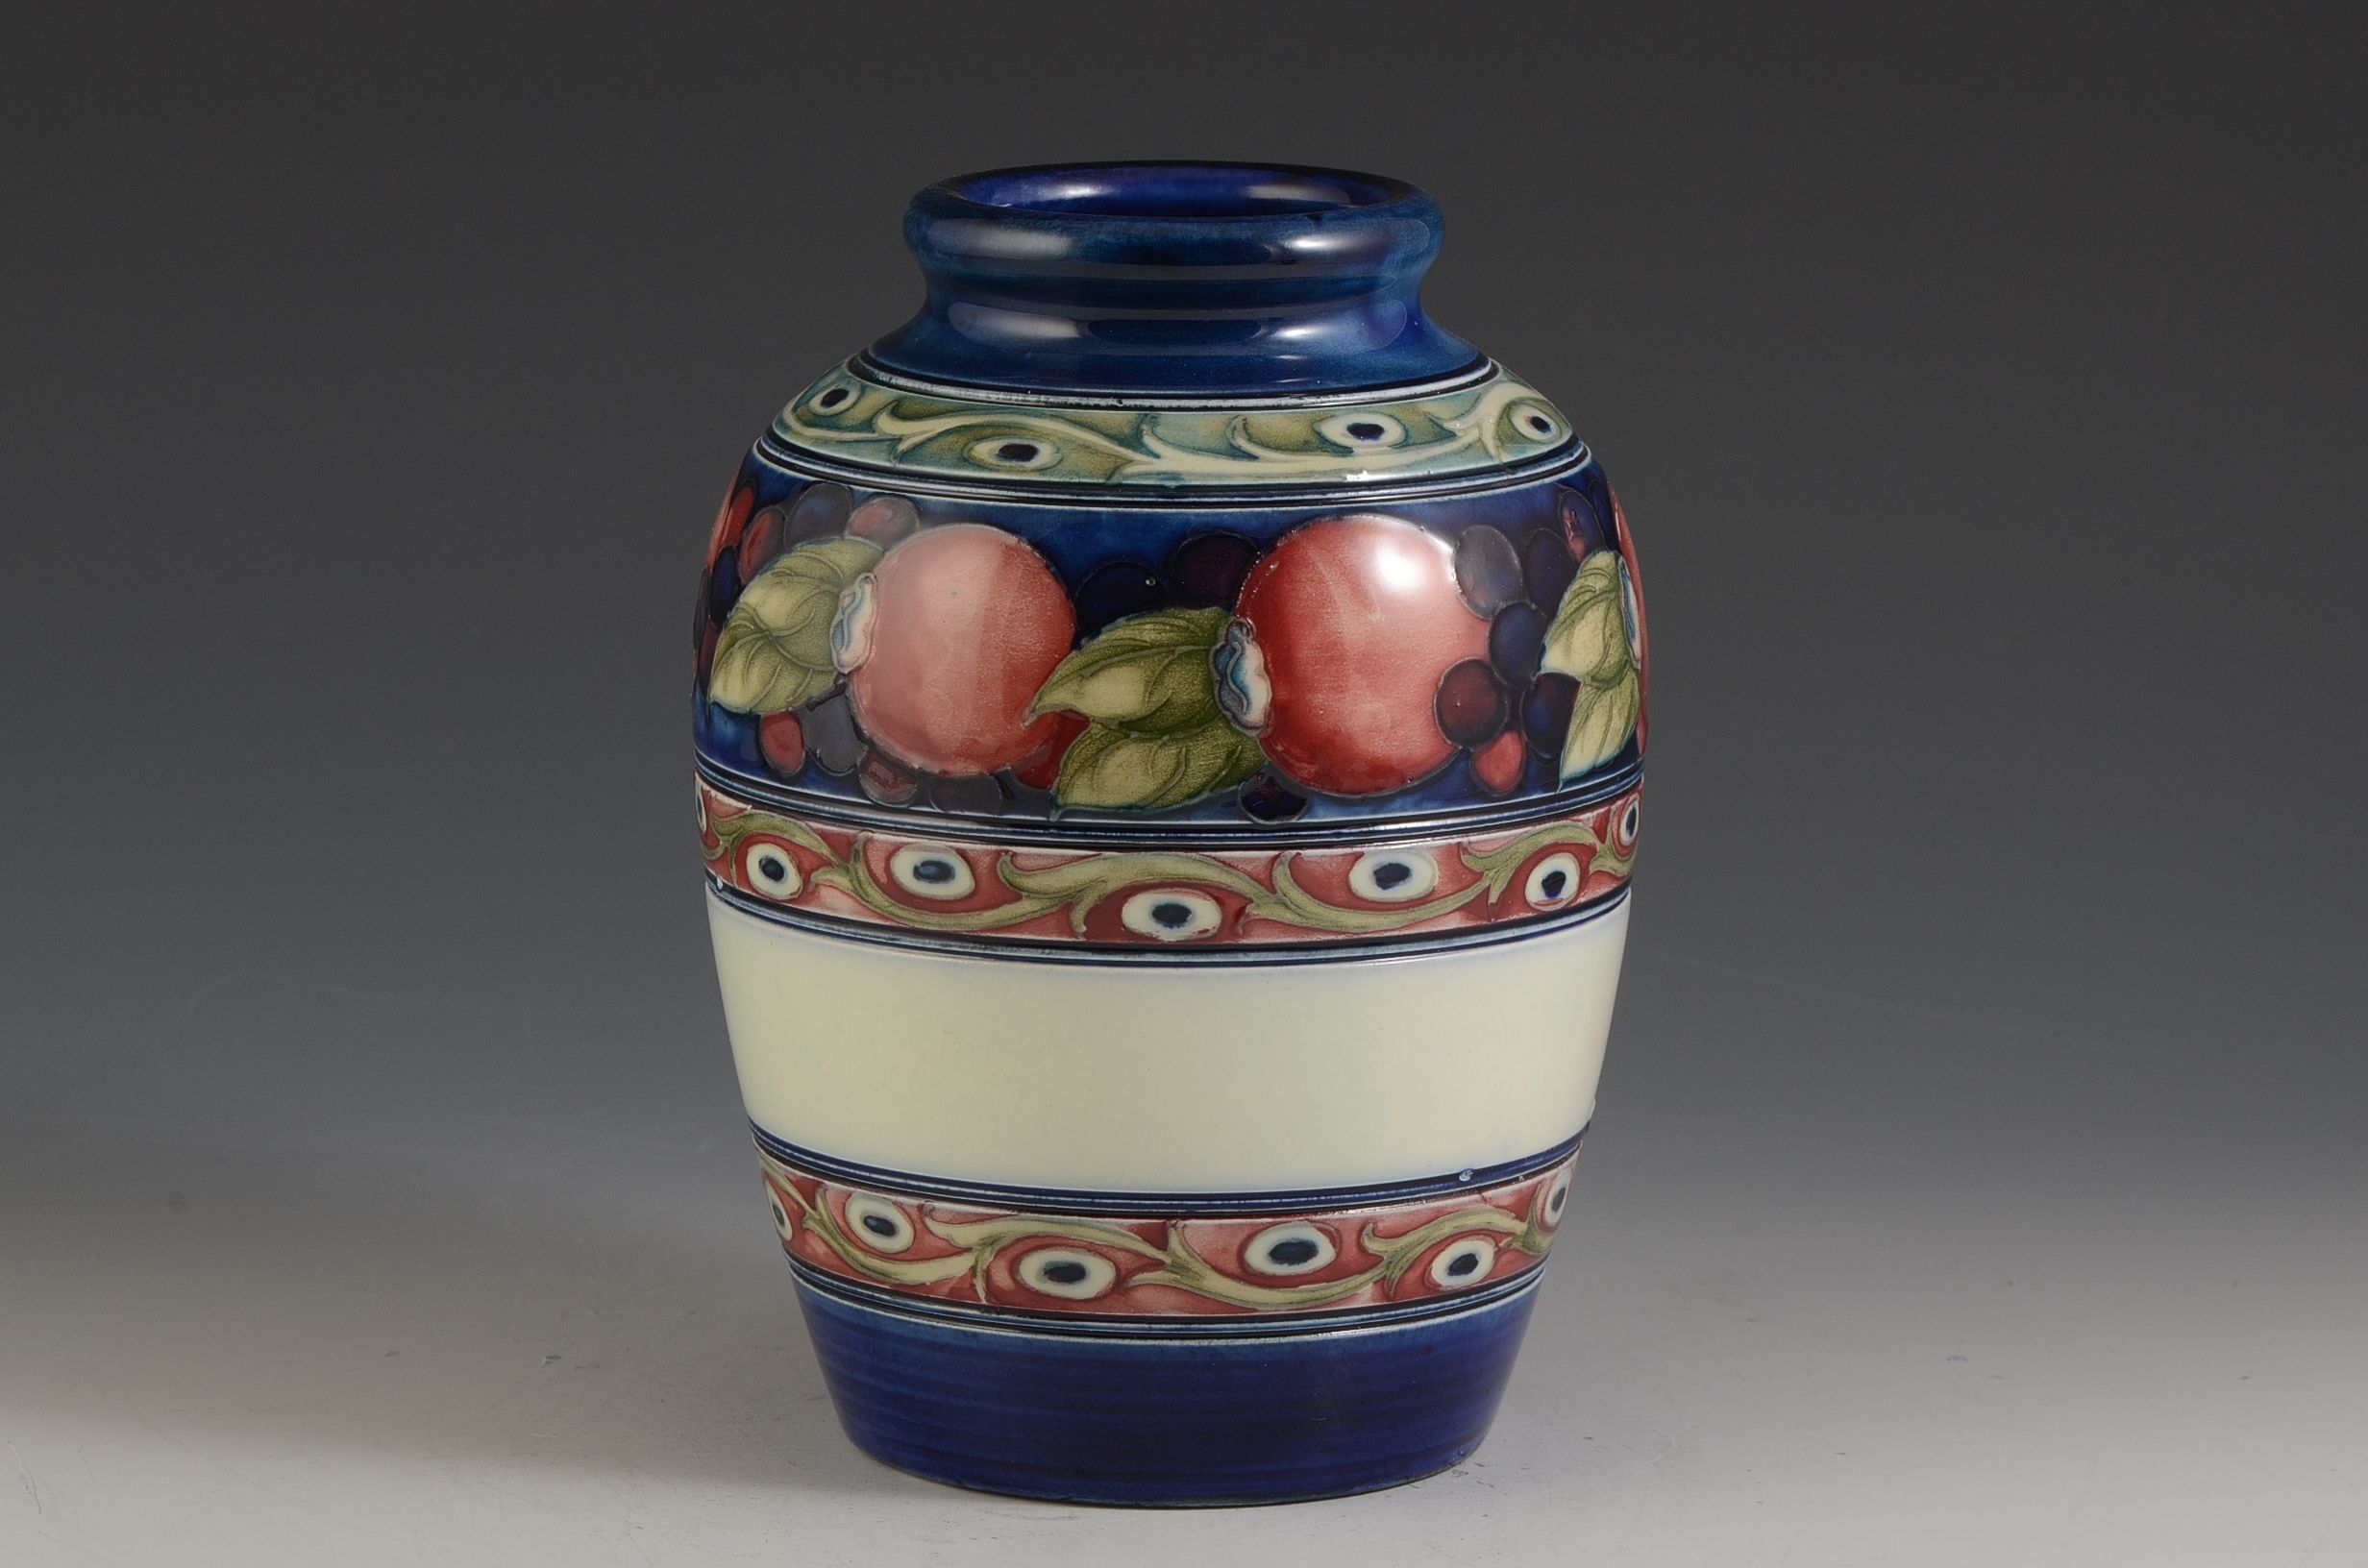 Andrew Muir | Clarice Cliff, Art Deco Pottery, Moorcroft and